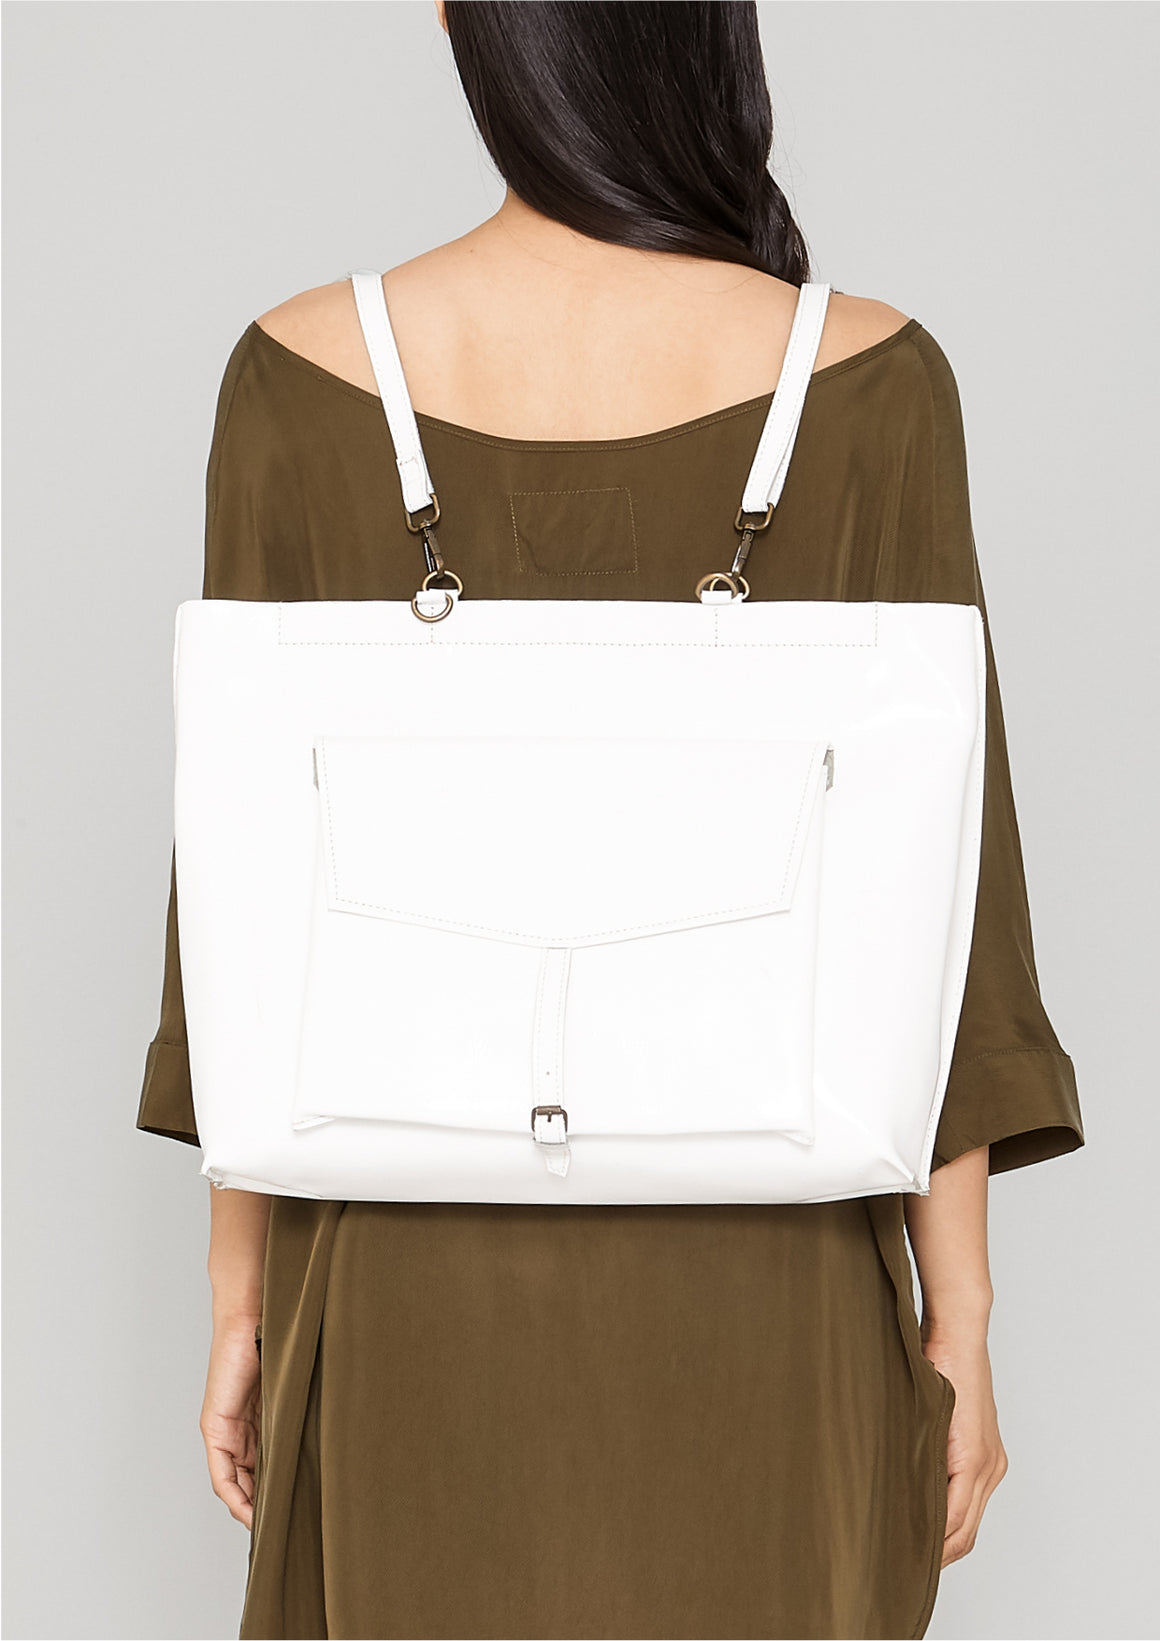 BAG/BACKPACK - PATENT LEATHER white